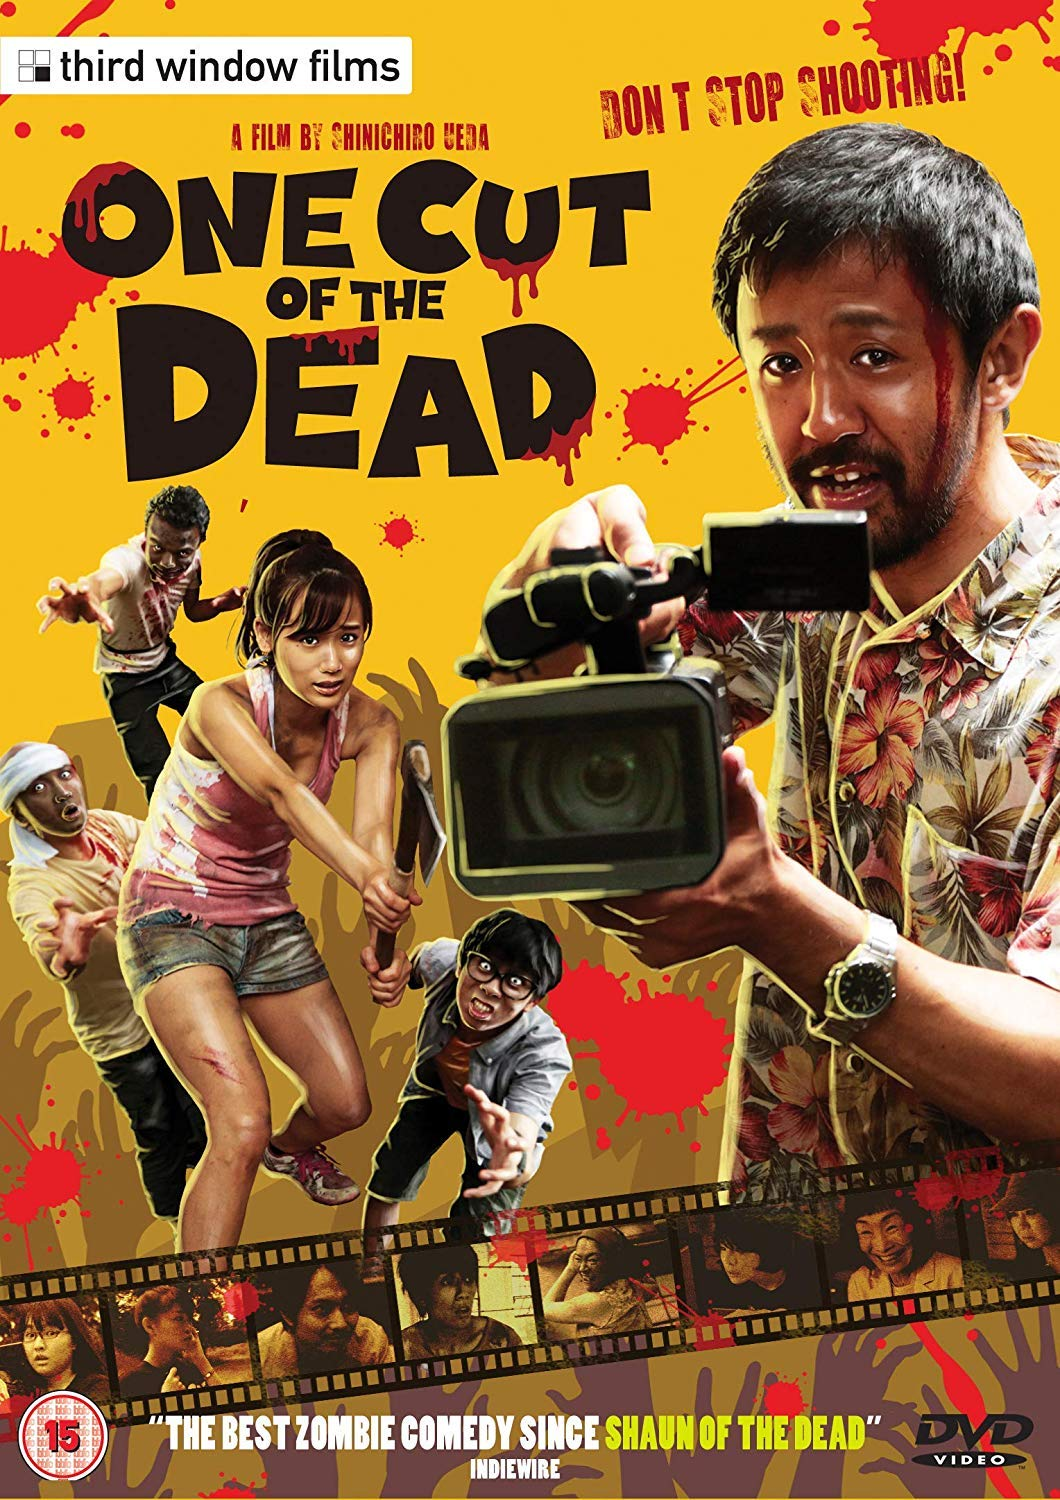 Amazon.com: One Cut Of The Dead [DVD]: Movies & TV